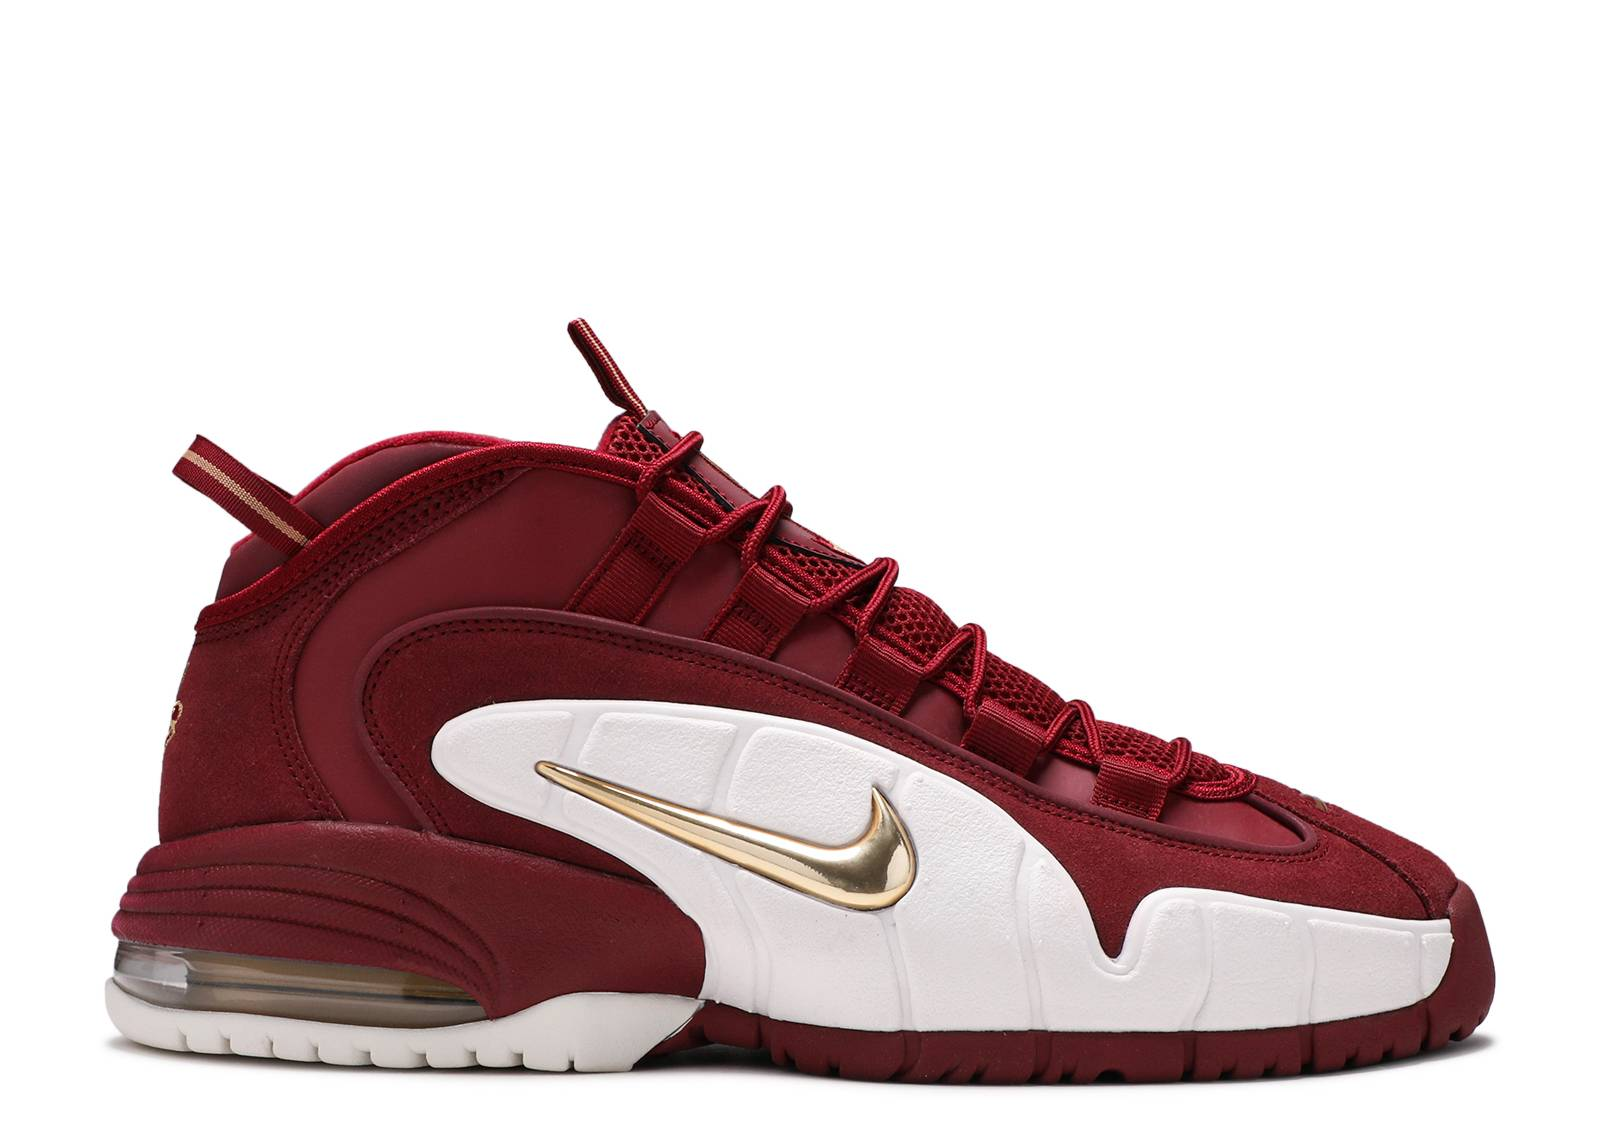 save off faa70 adaf1 Air Max Penny - Nike - 685153 601 - team red metallic gold   Flight Club